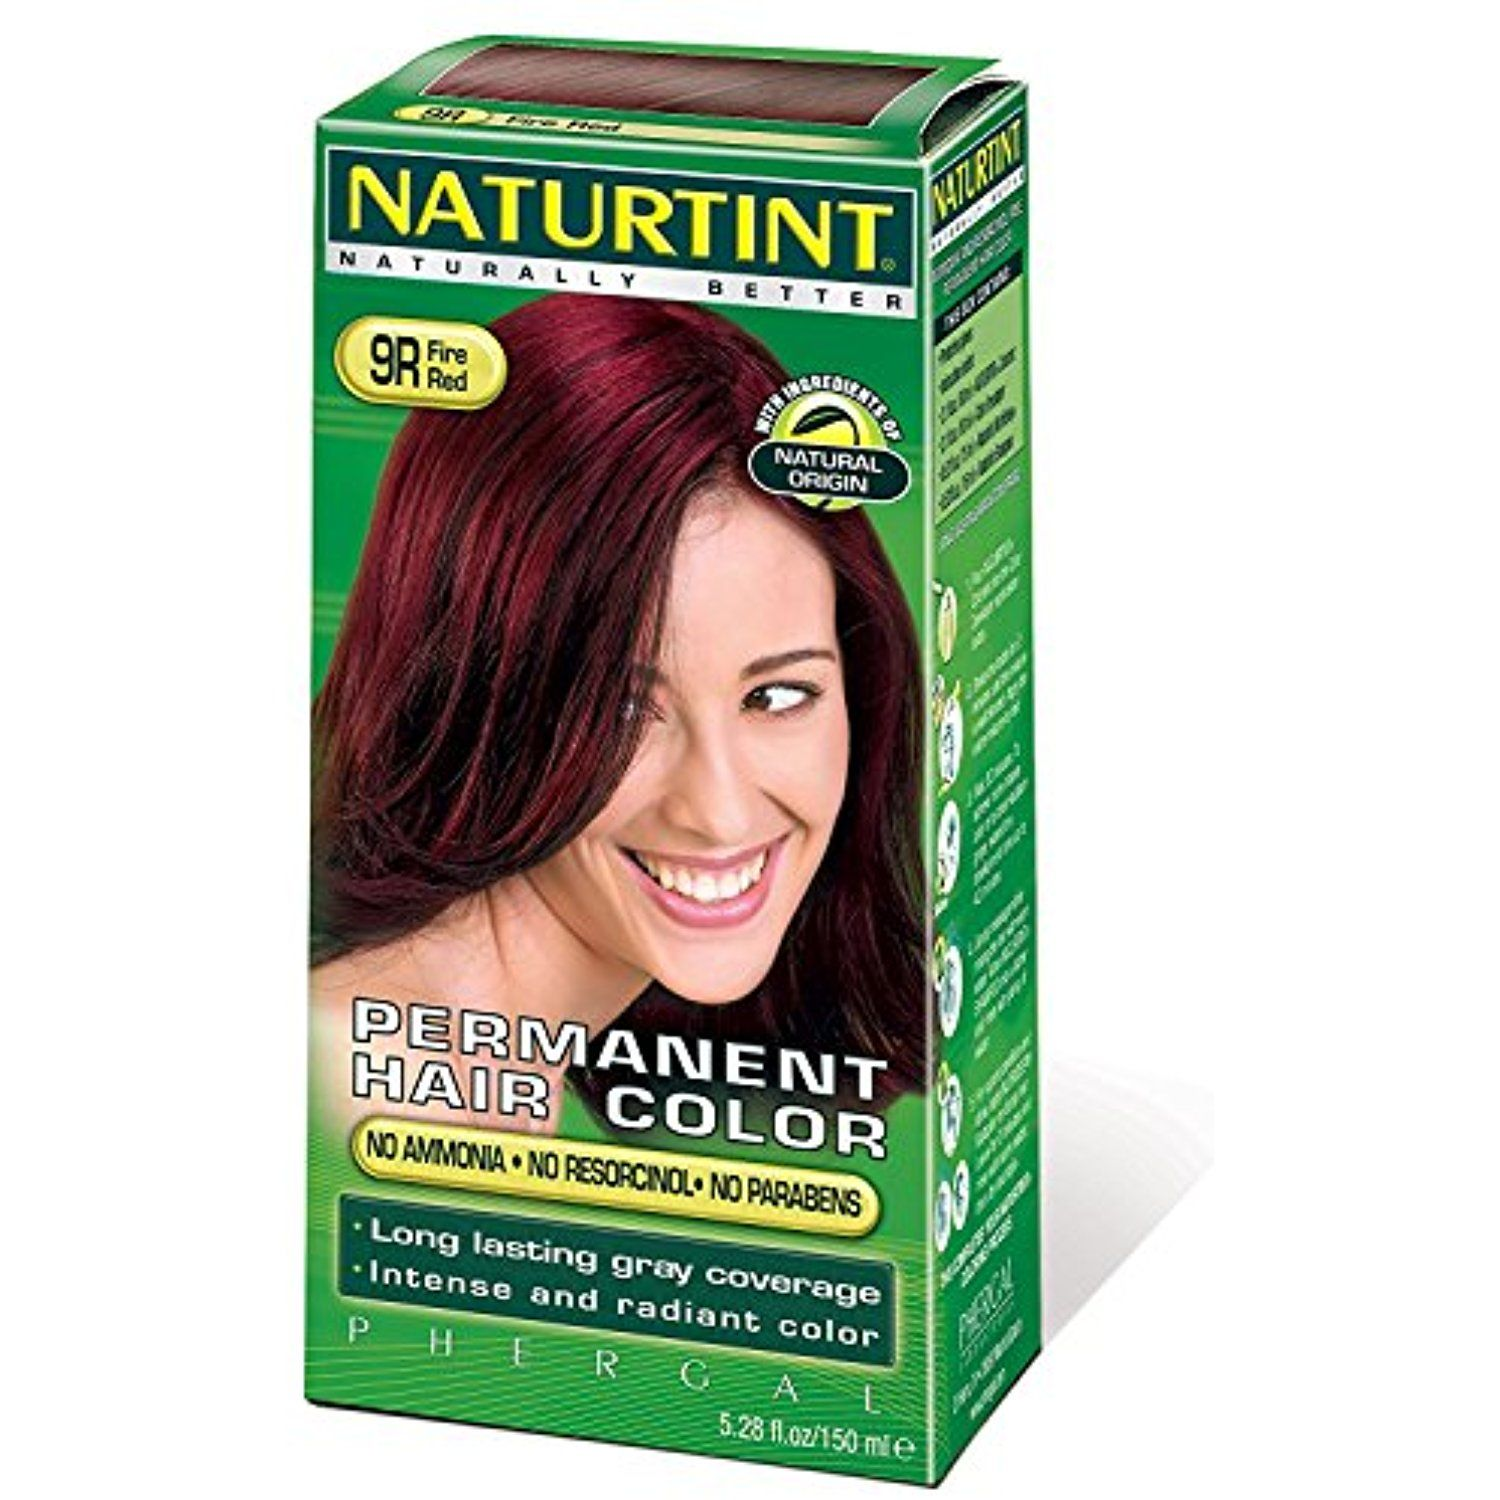 Naturtint hr clr r fire red to view further for this item visit